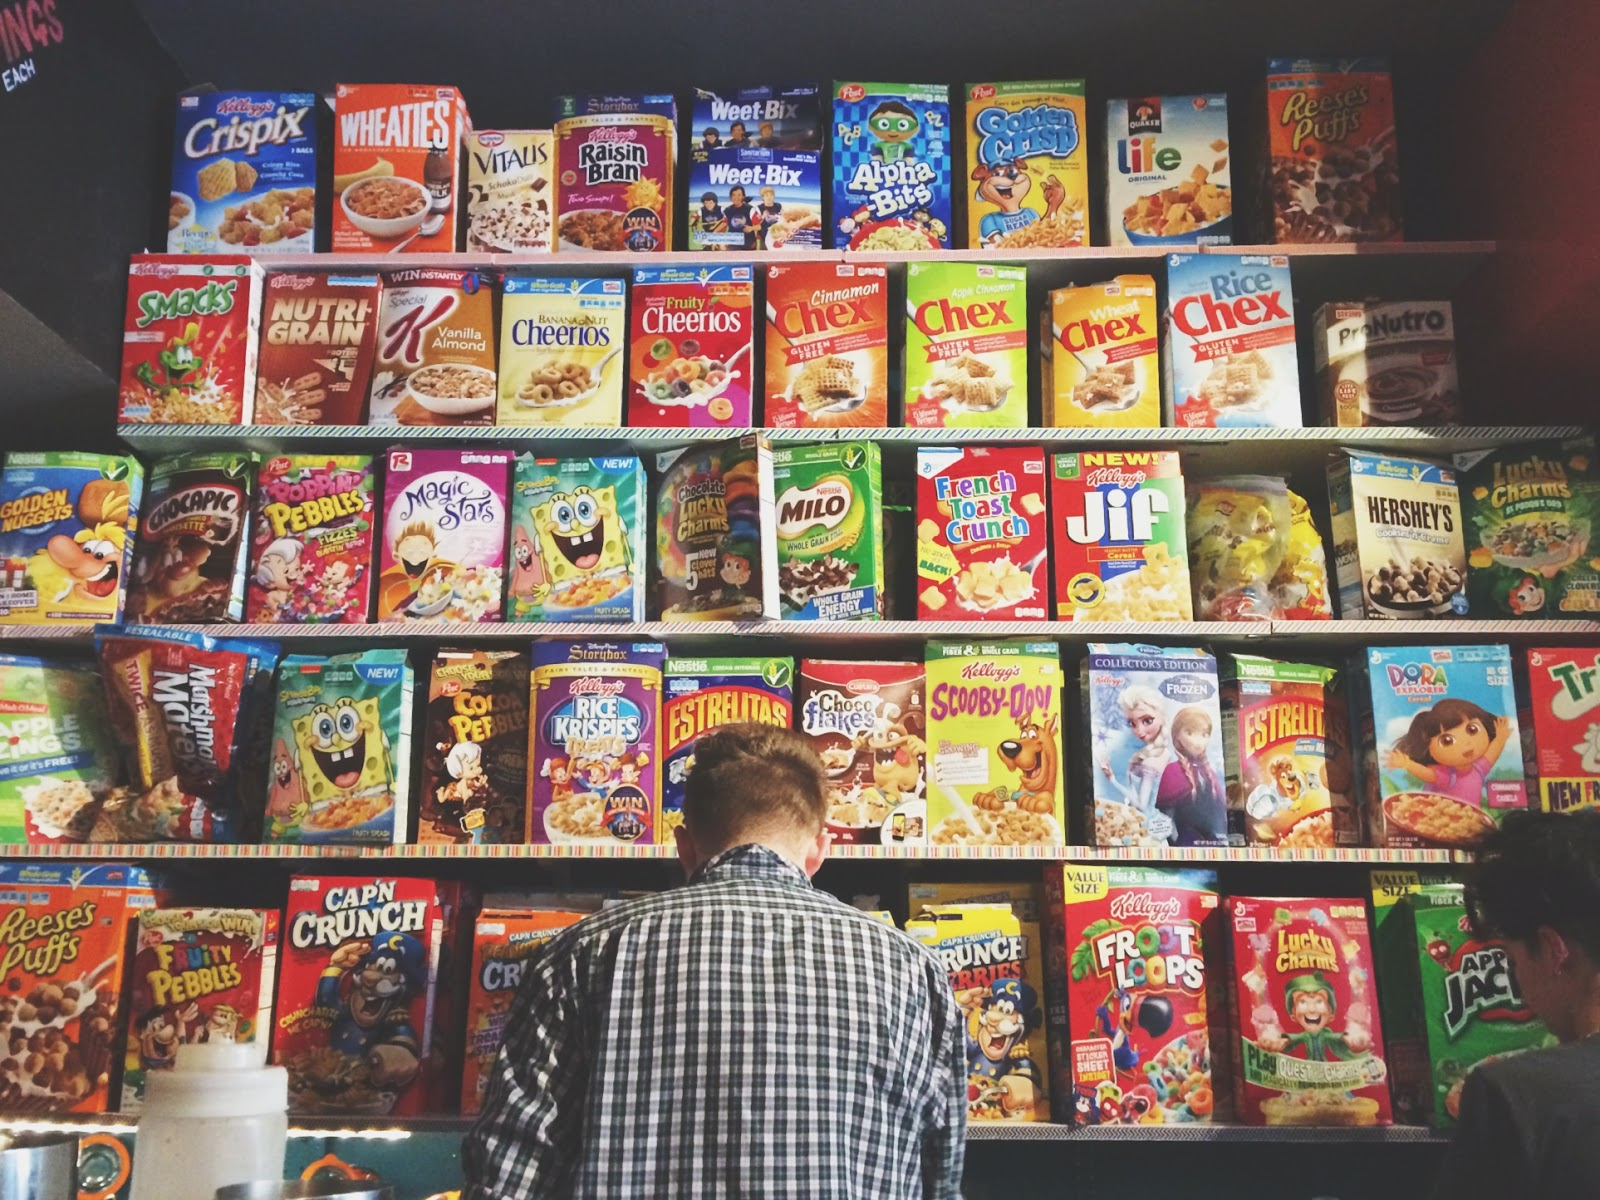 Imported Cereals Contain Cancer Causing Pesticide: Report